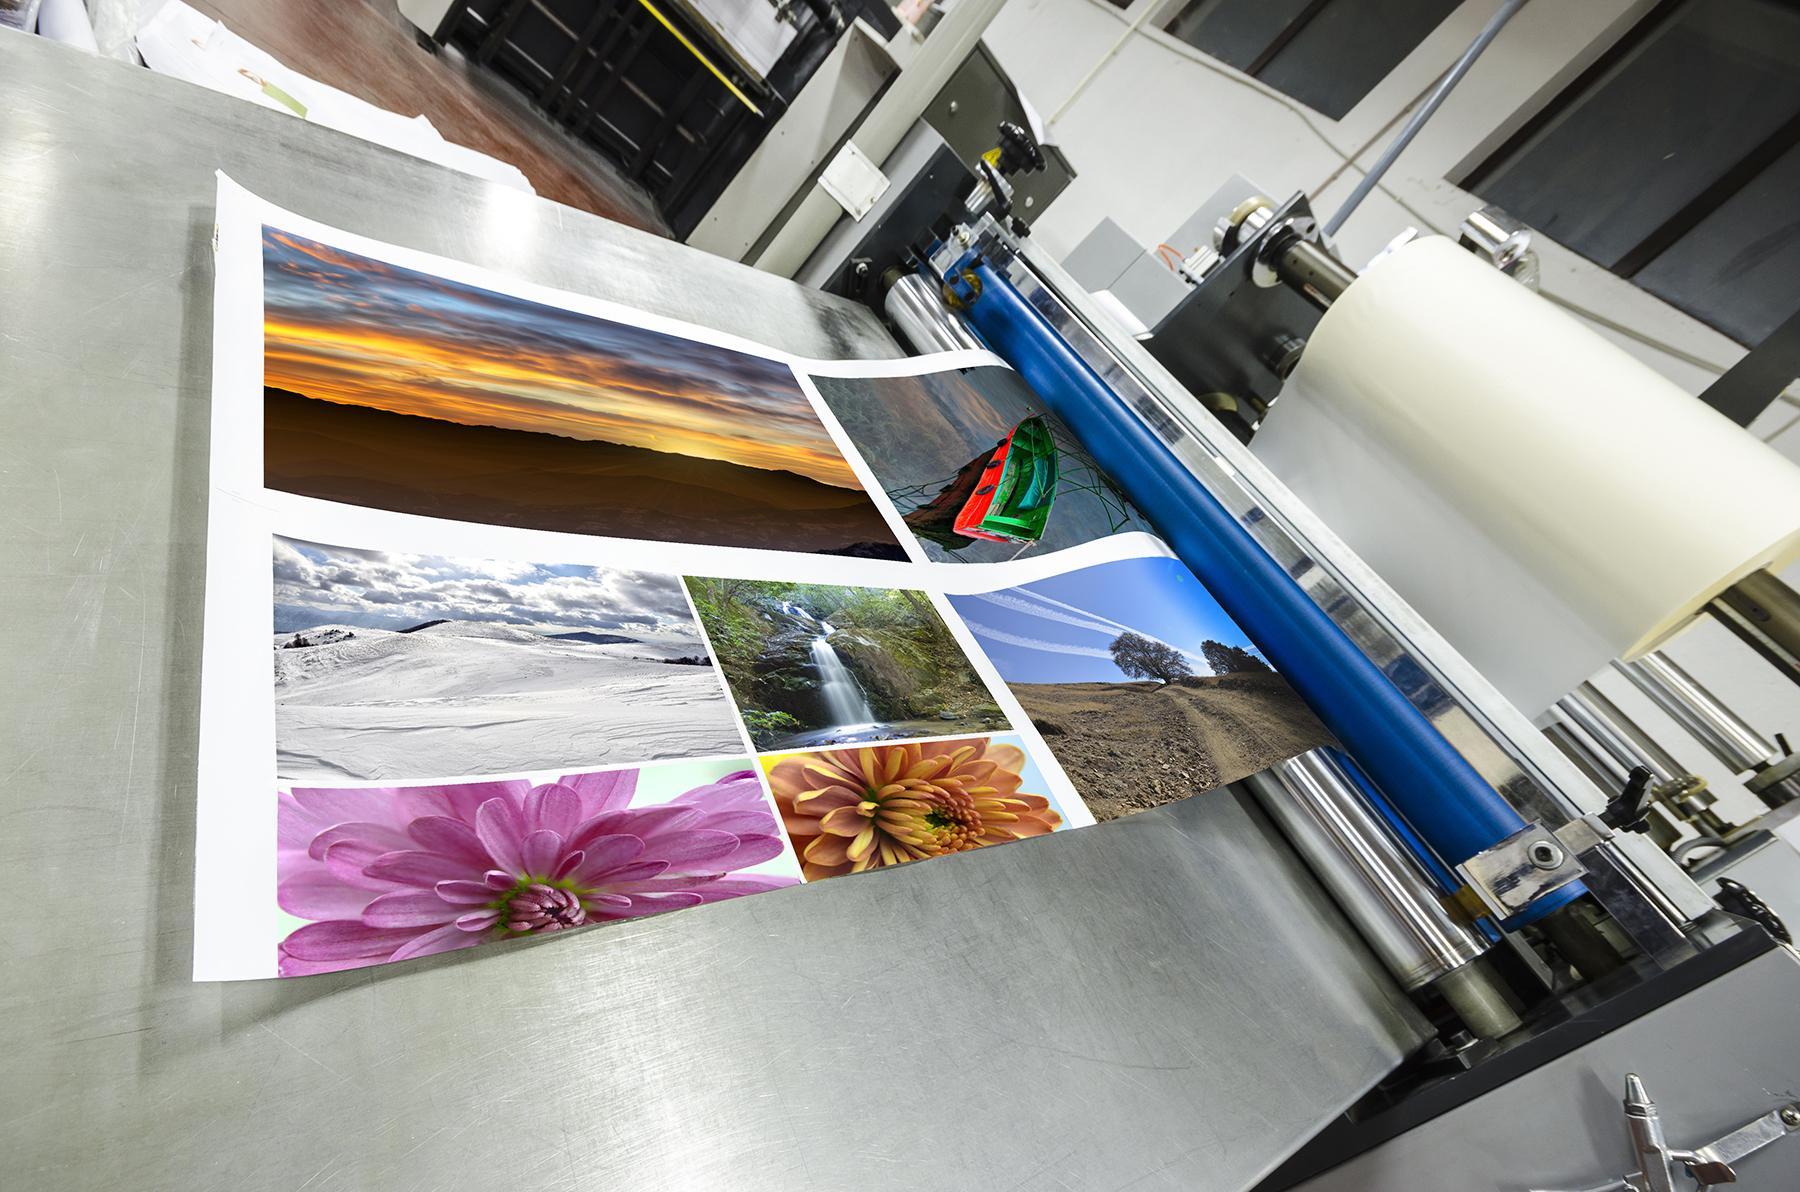 Best price for printing photos